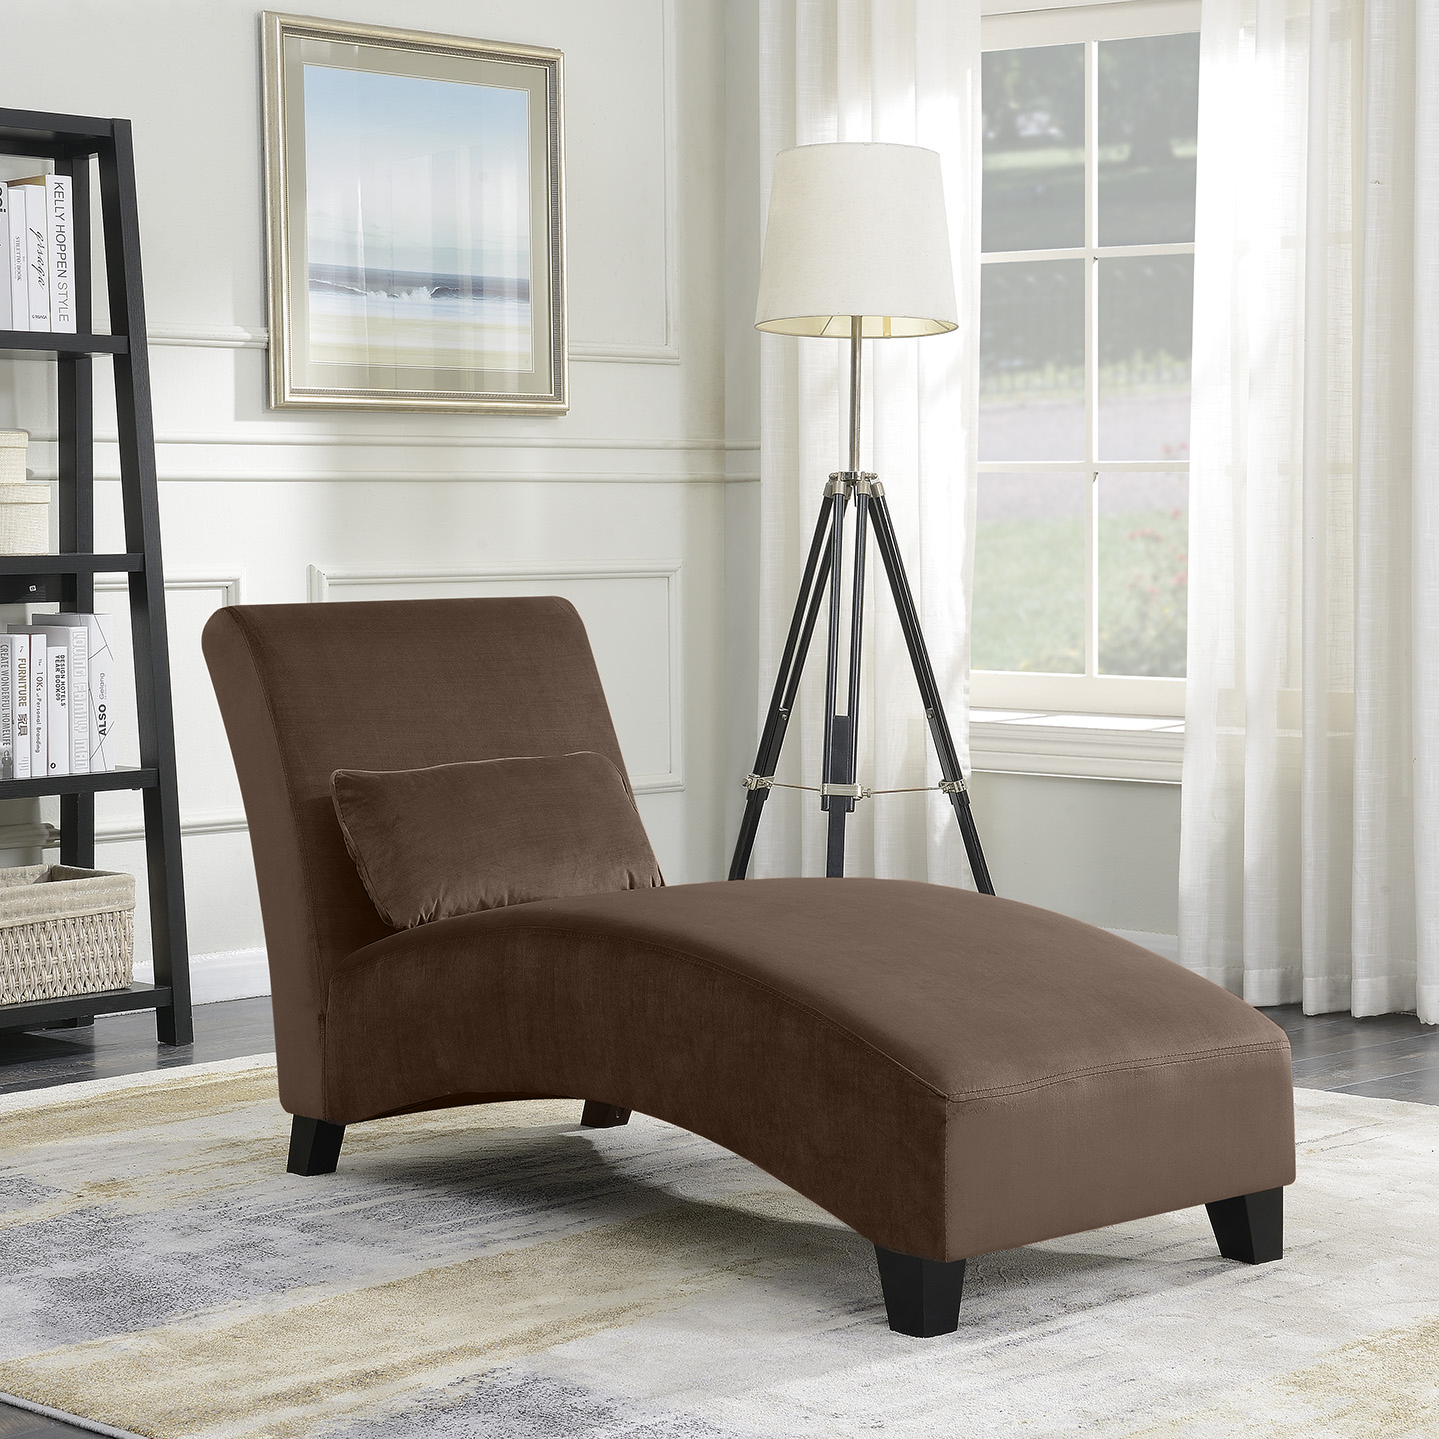 Belleze Chaise Lounge Indoor Furniture Living Room Chair Contemporary Sofa Couch Hardwood Legs, Brown